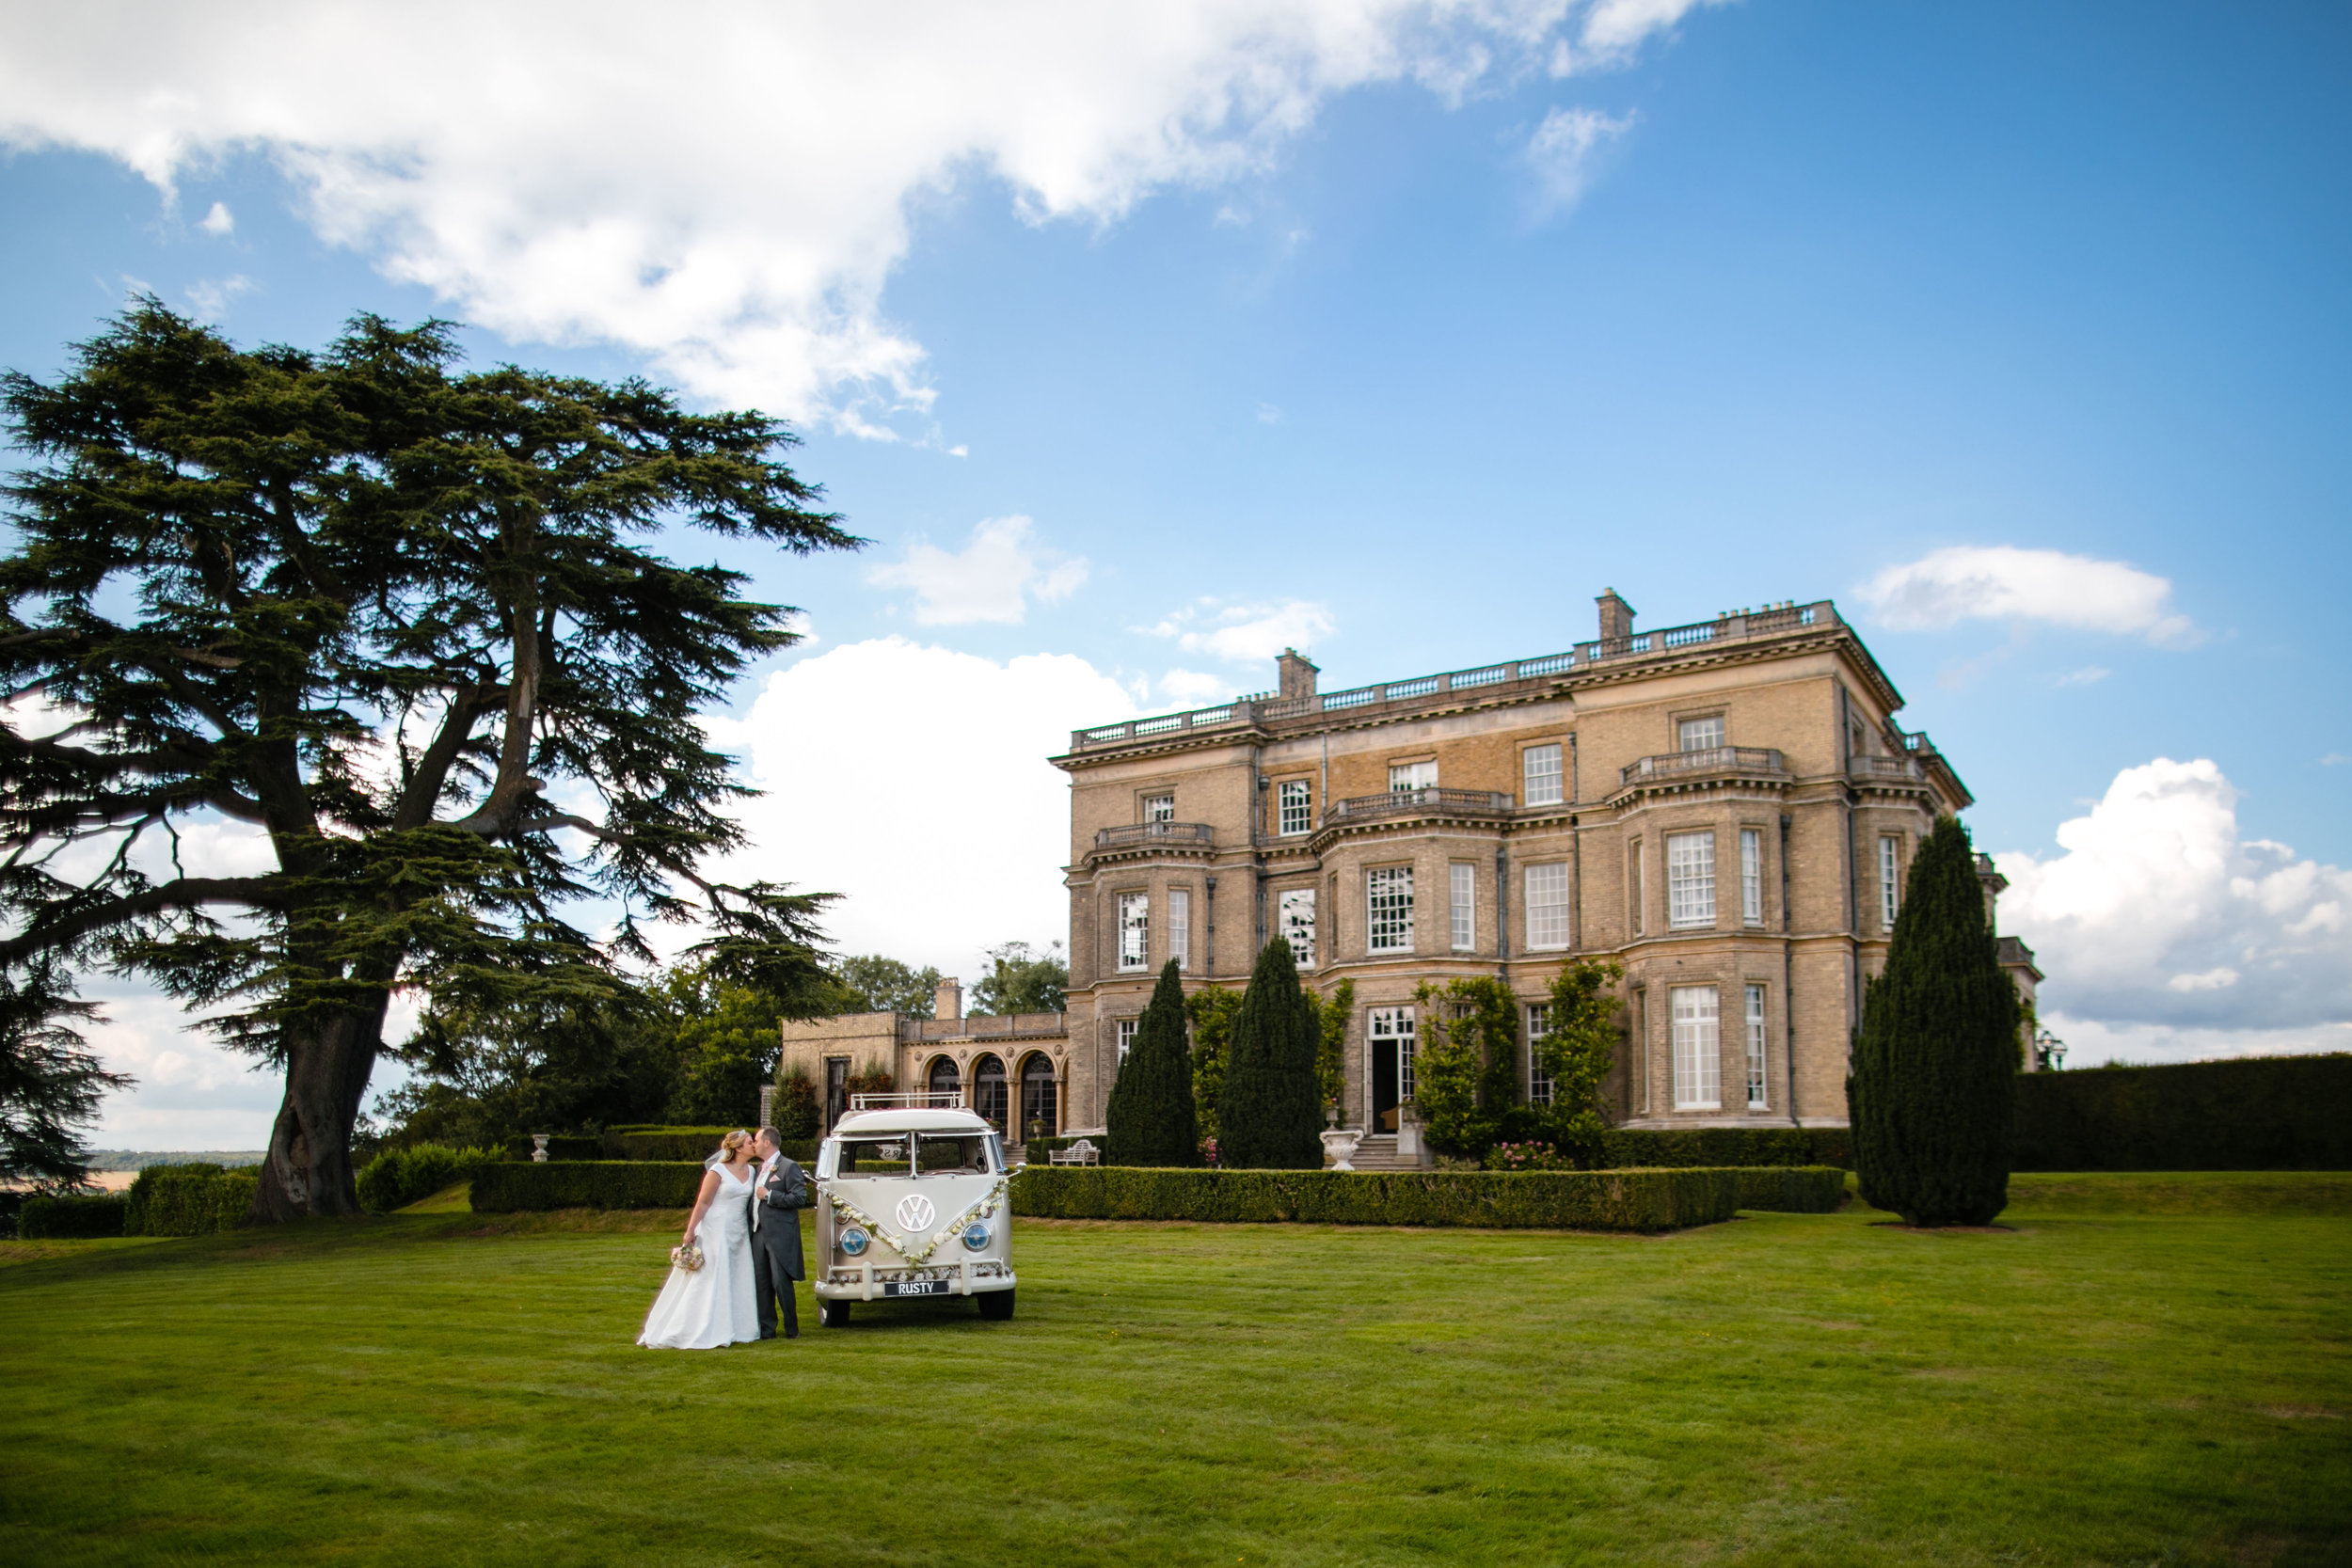 Hedsor house wedding photography-1.jpg